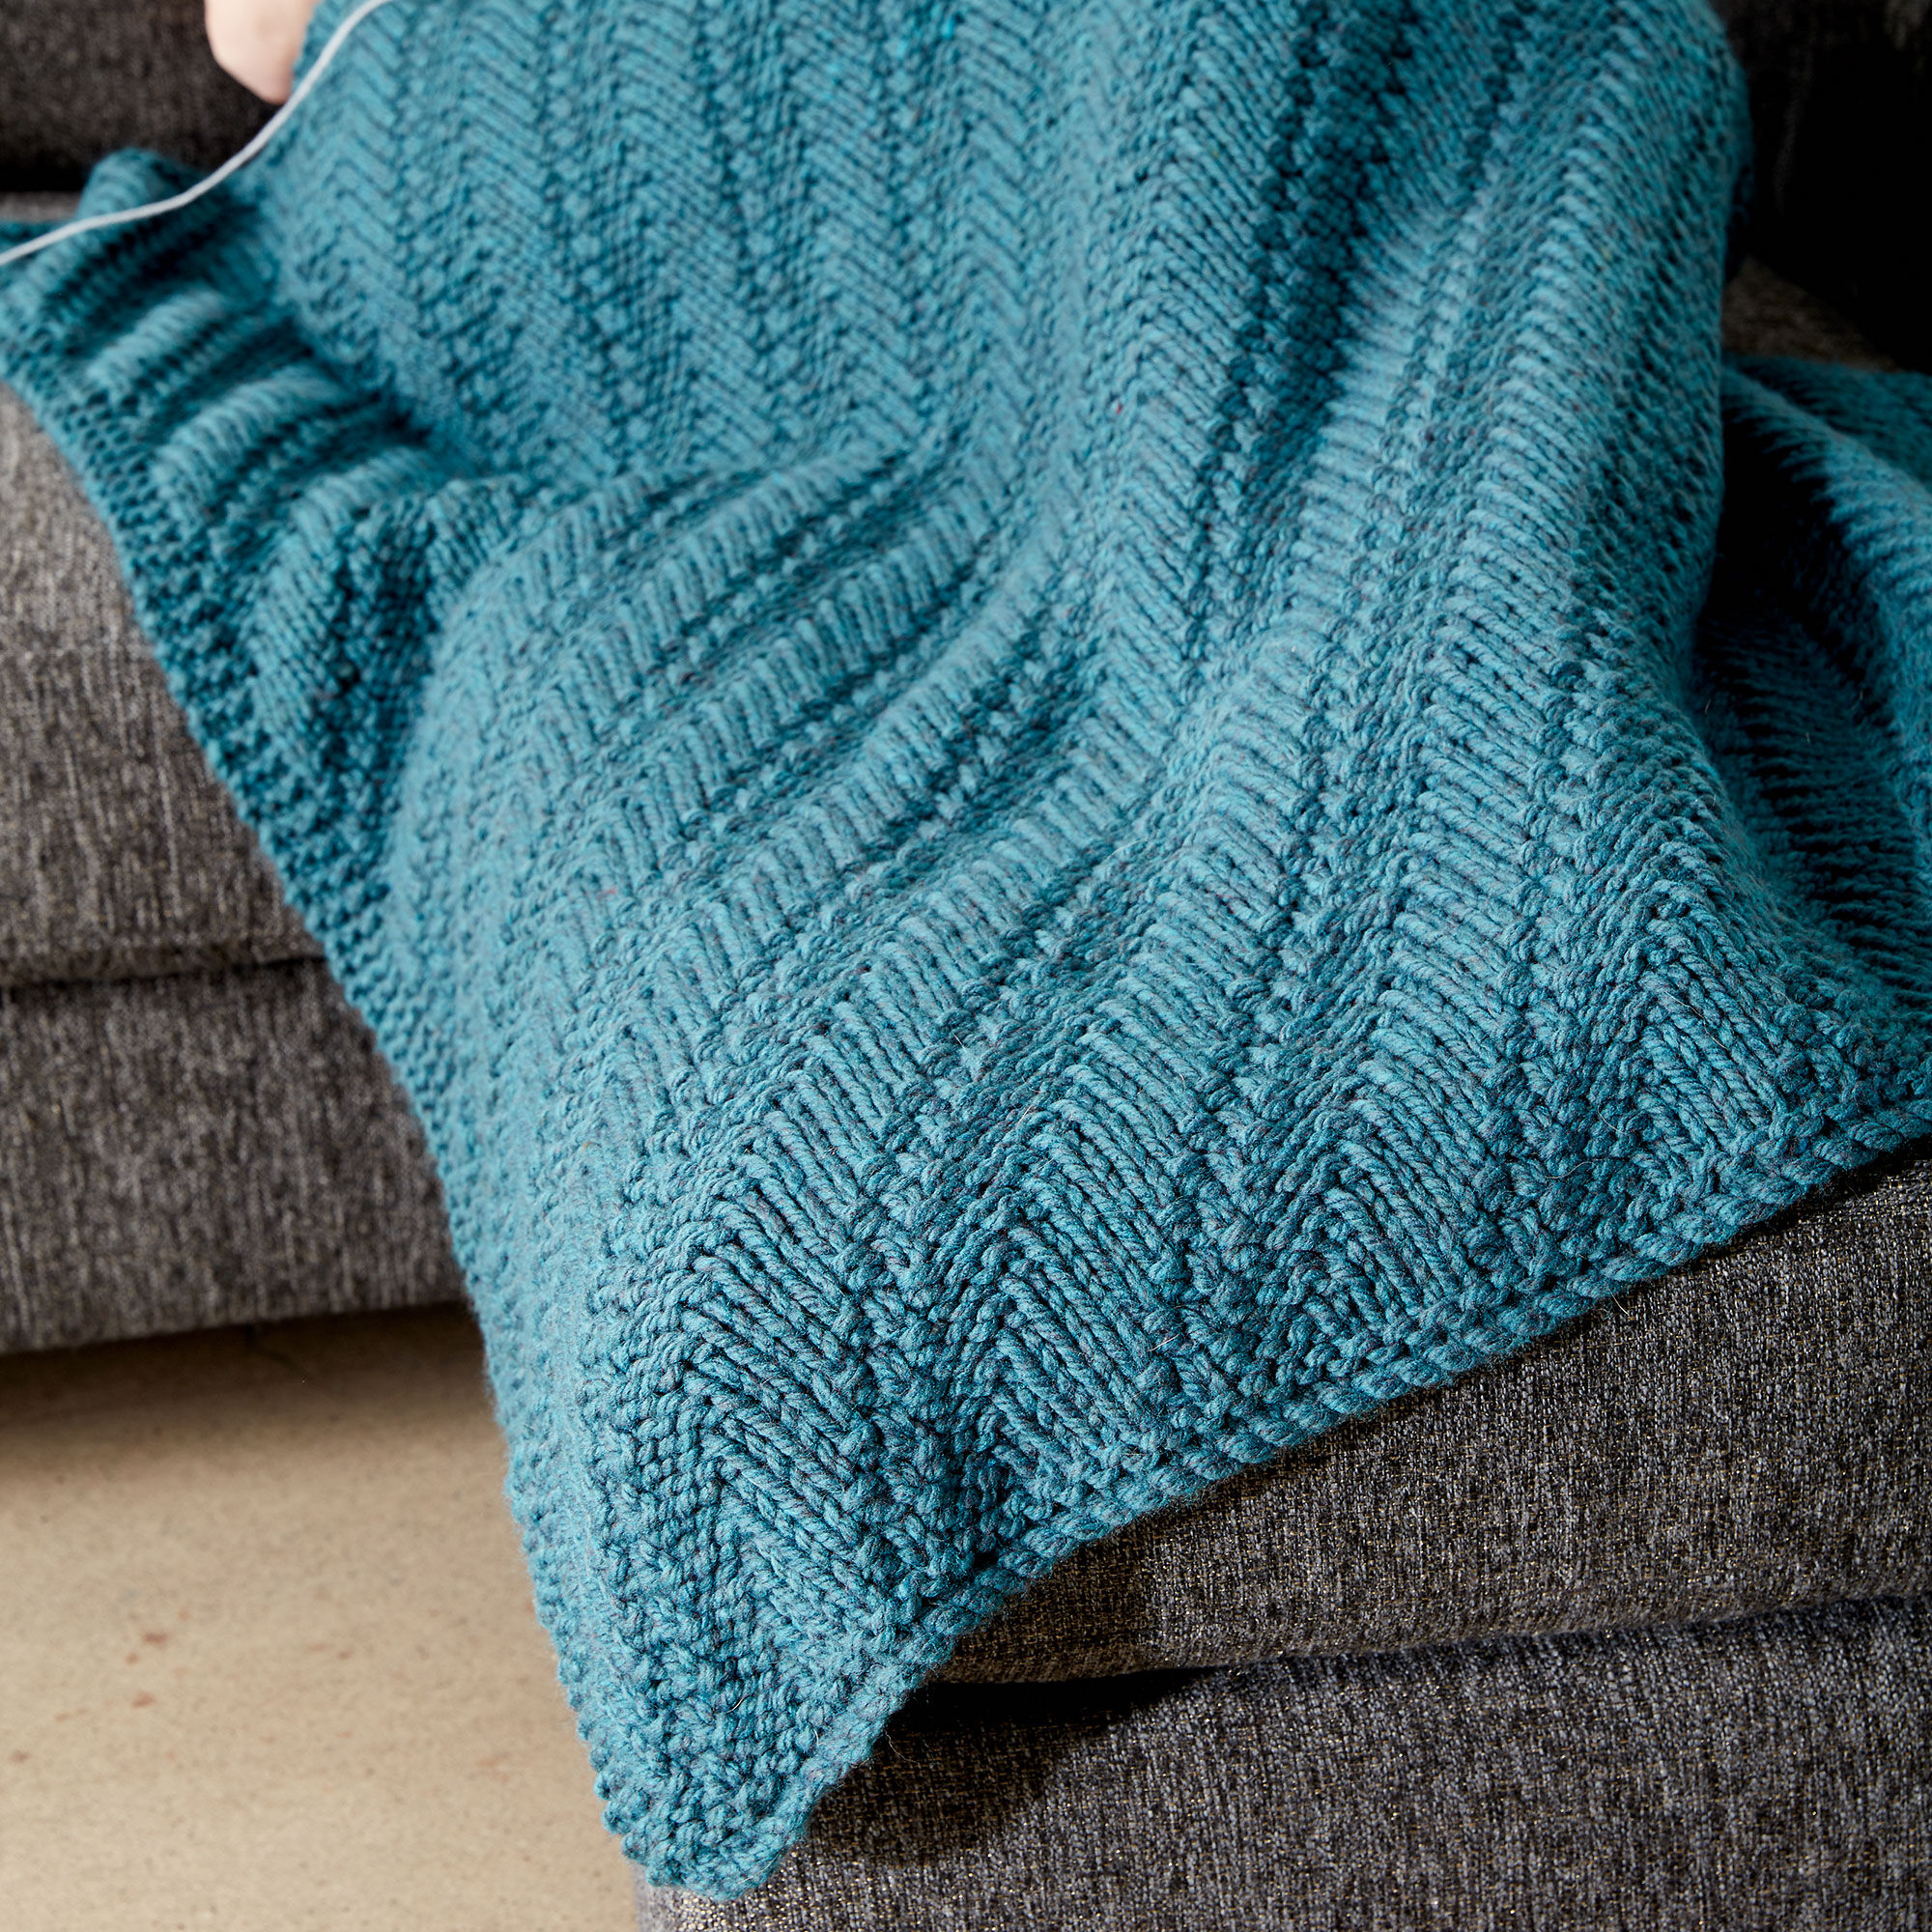 Reversible knitting patterns for blankets